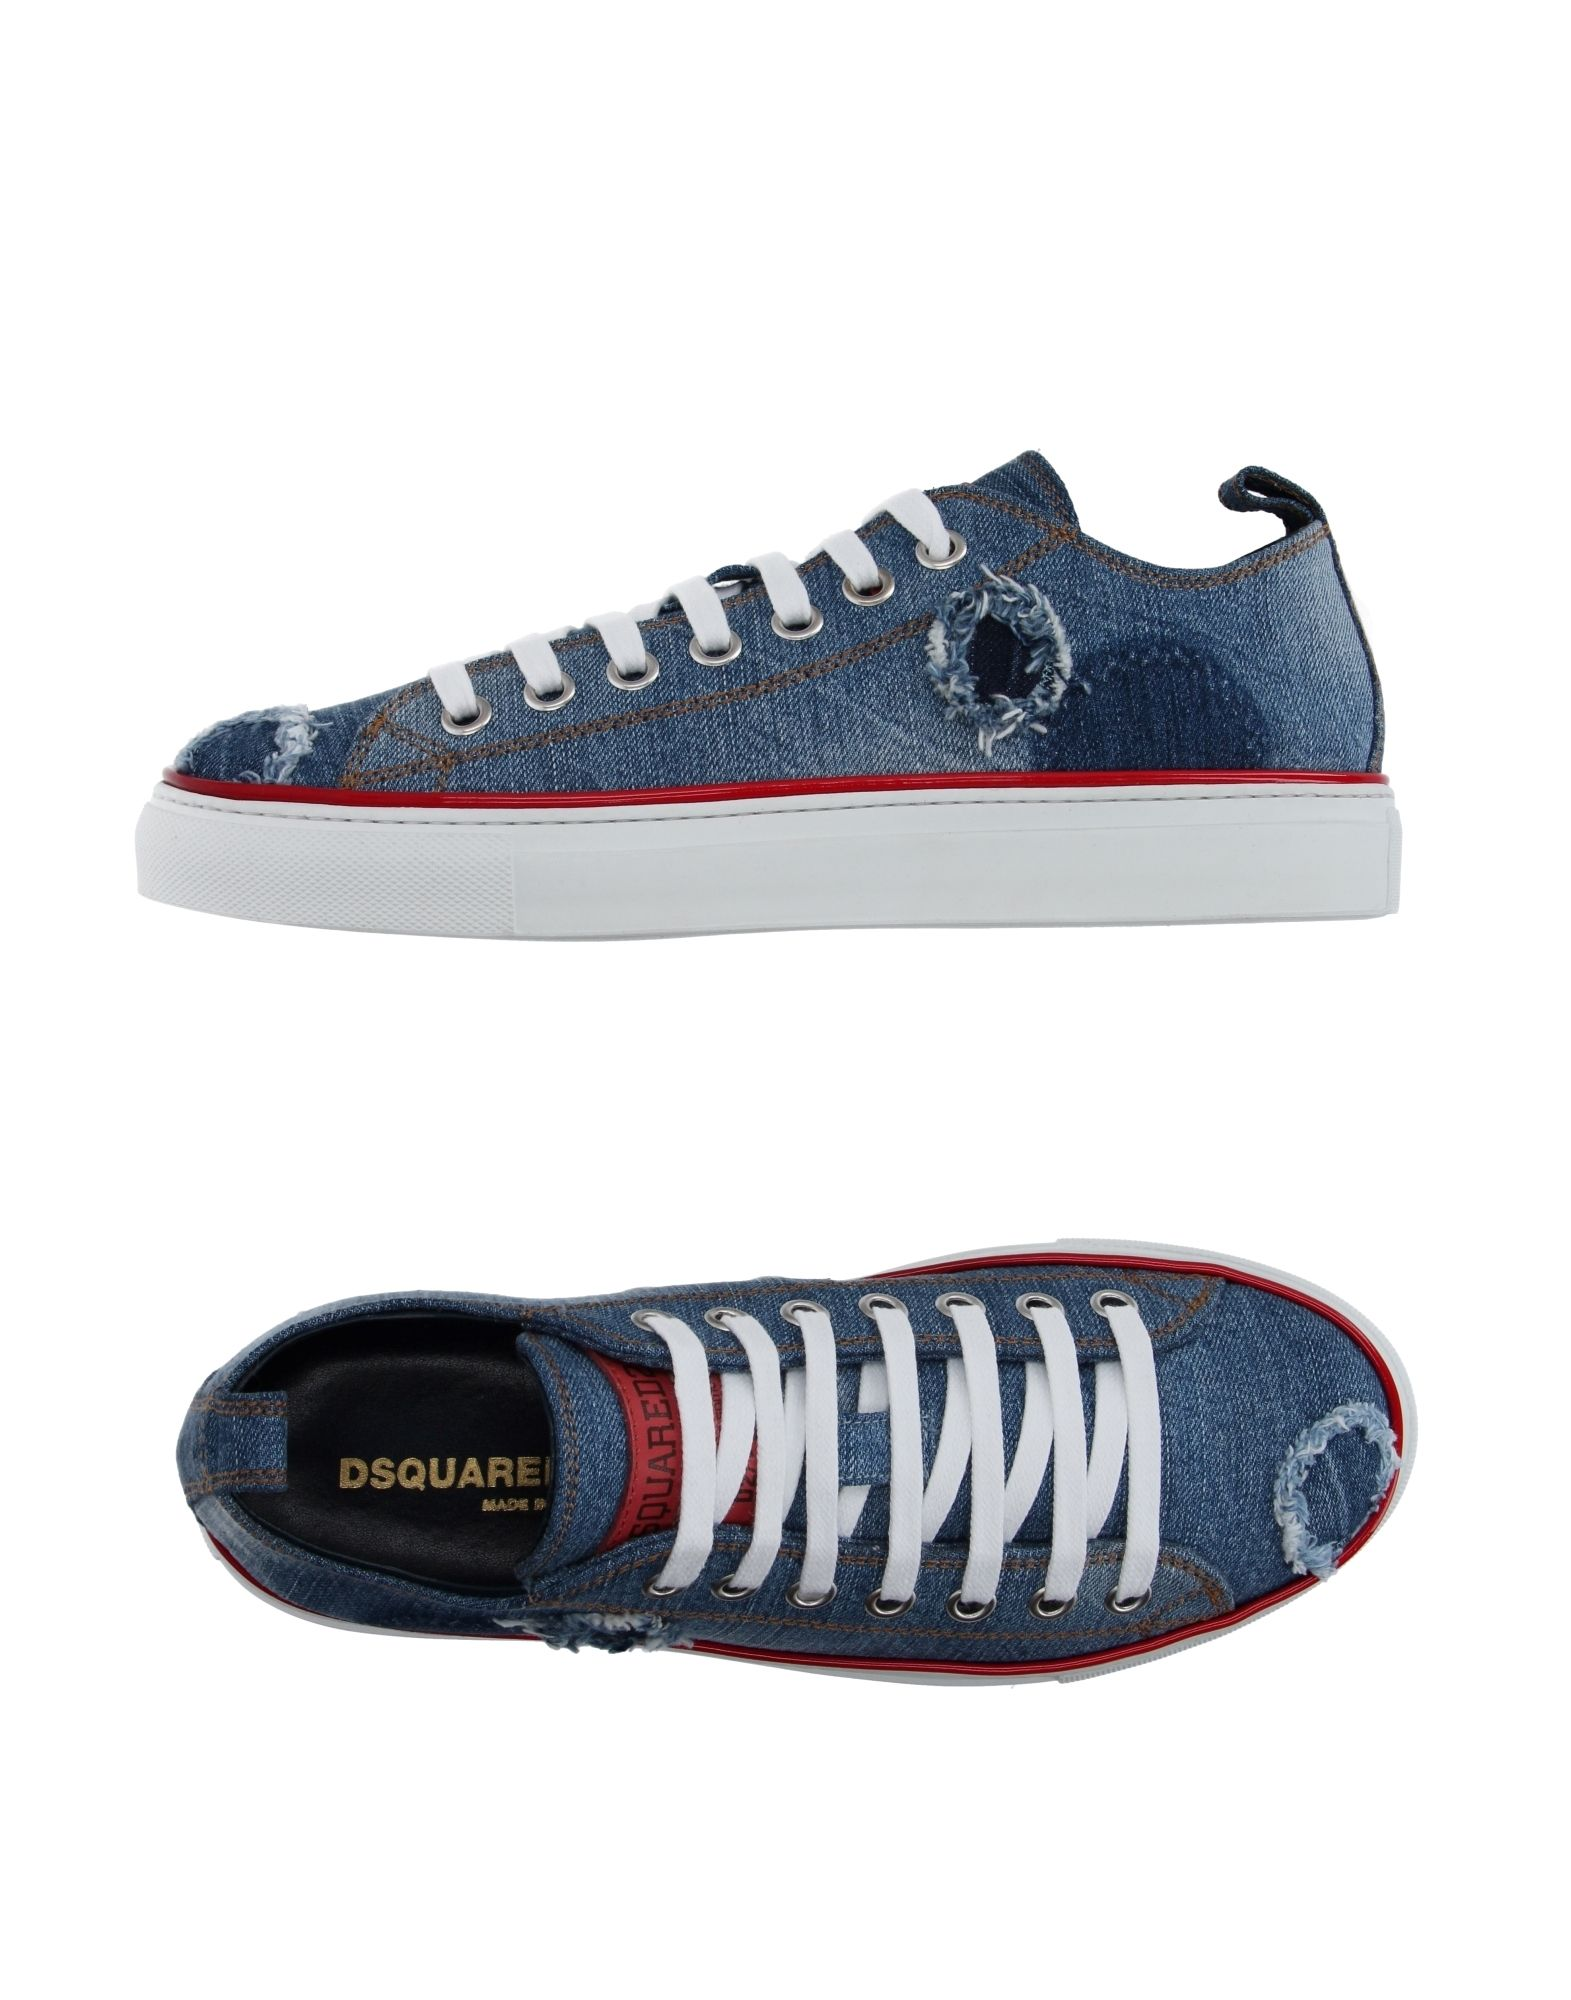 Dsquared2 Dsquared2  Sneakers Herren  11065129VR a81efd